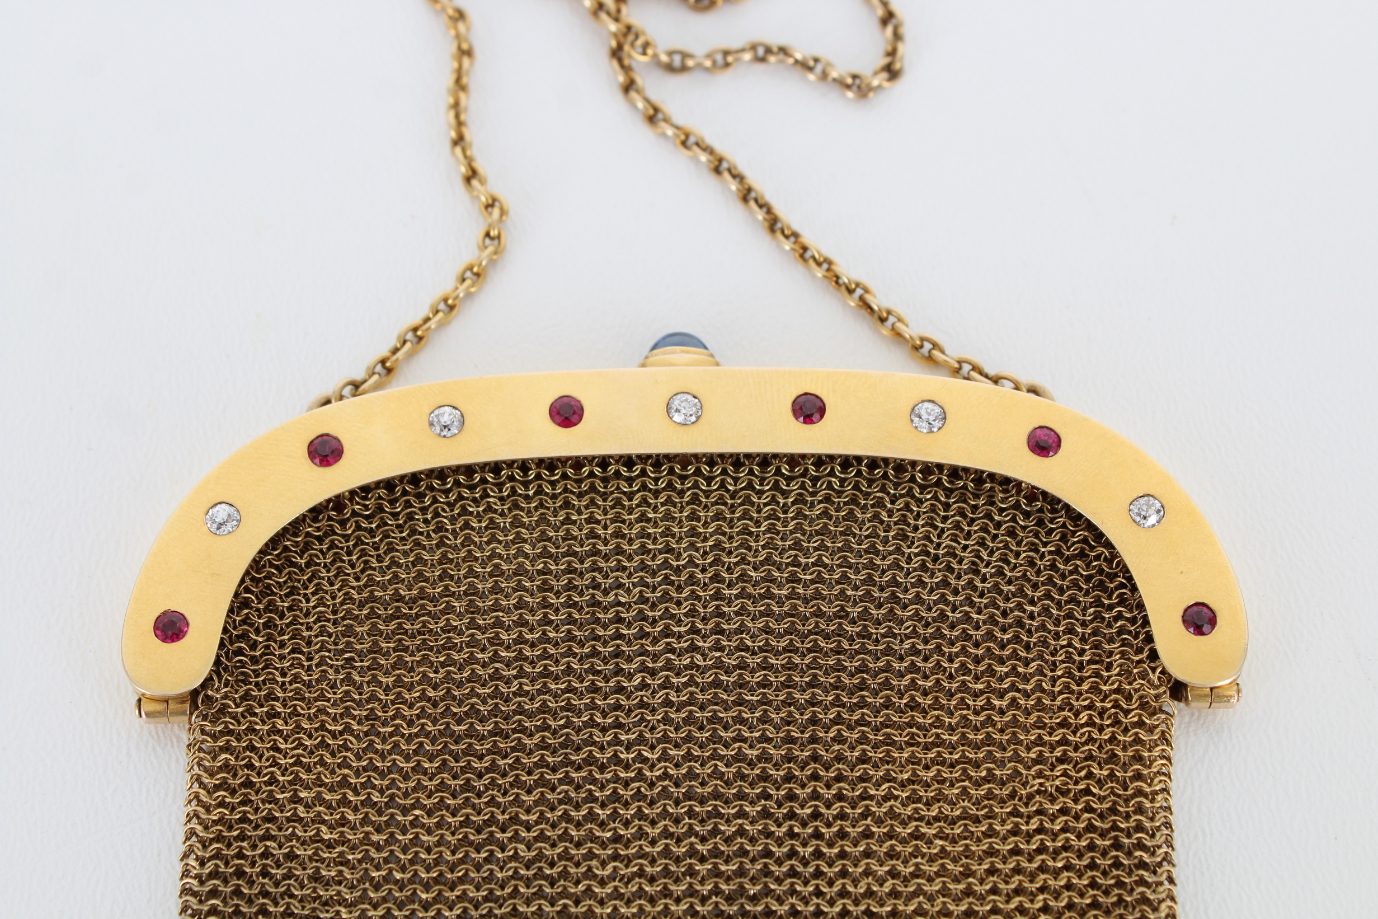 14K Gold Mesh Coin Purse w/ Diamond & Ruby Clasp - Image 3 of 6